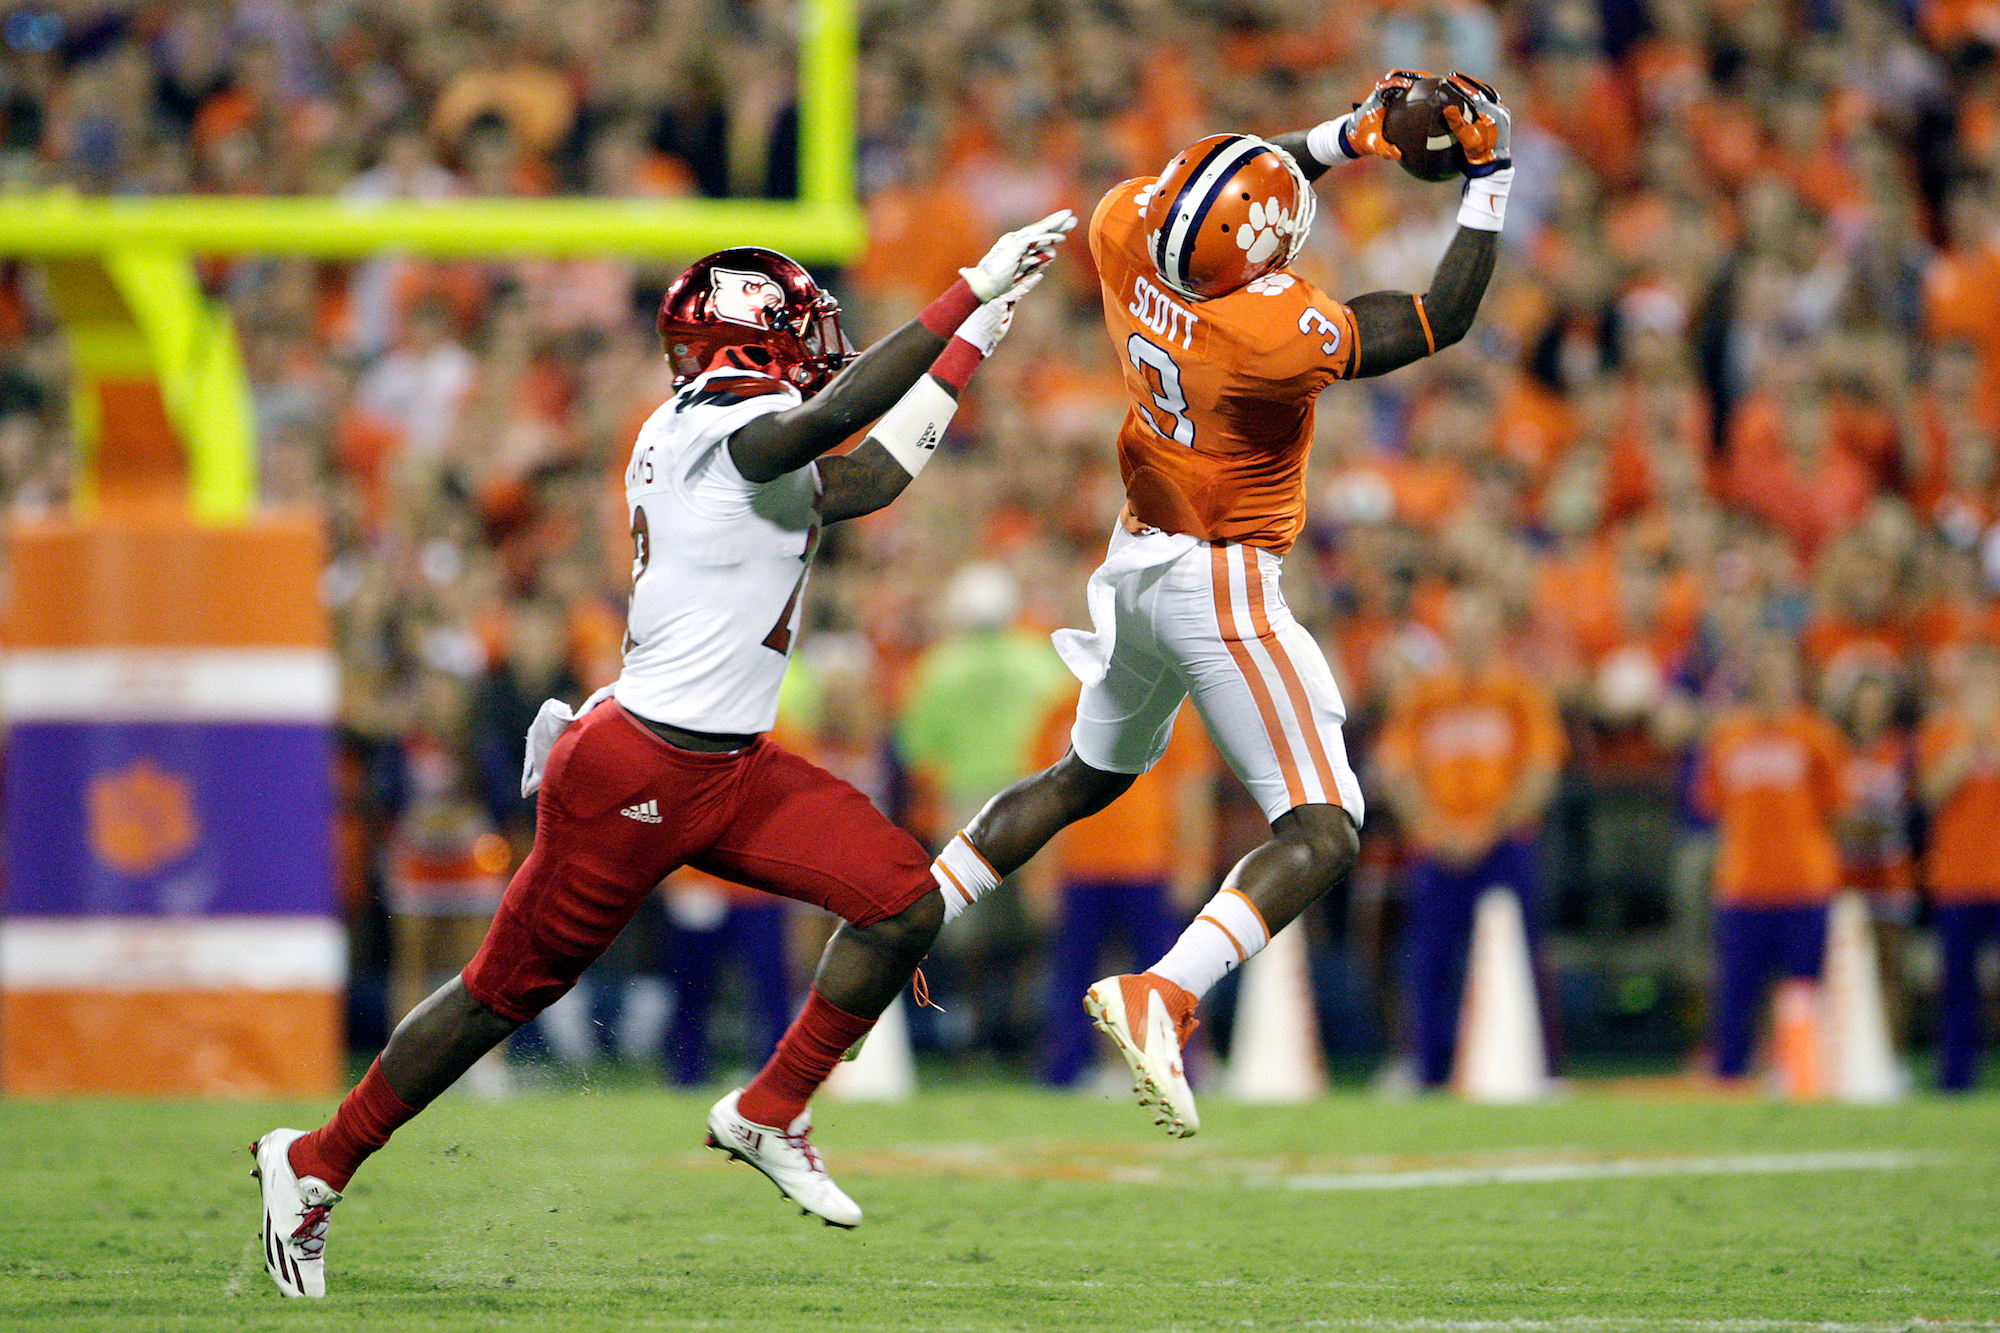 Is ABC's Saturday Night Football ending SEC on CBS' reign ...